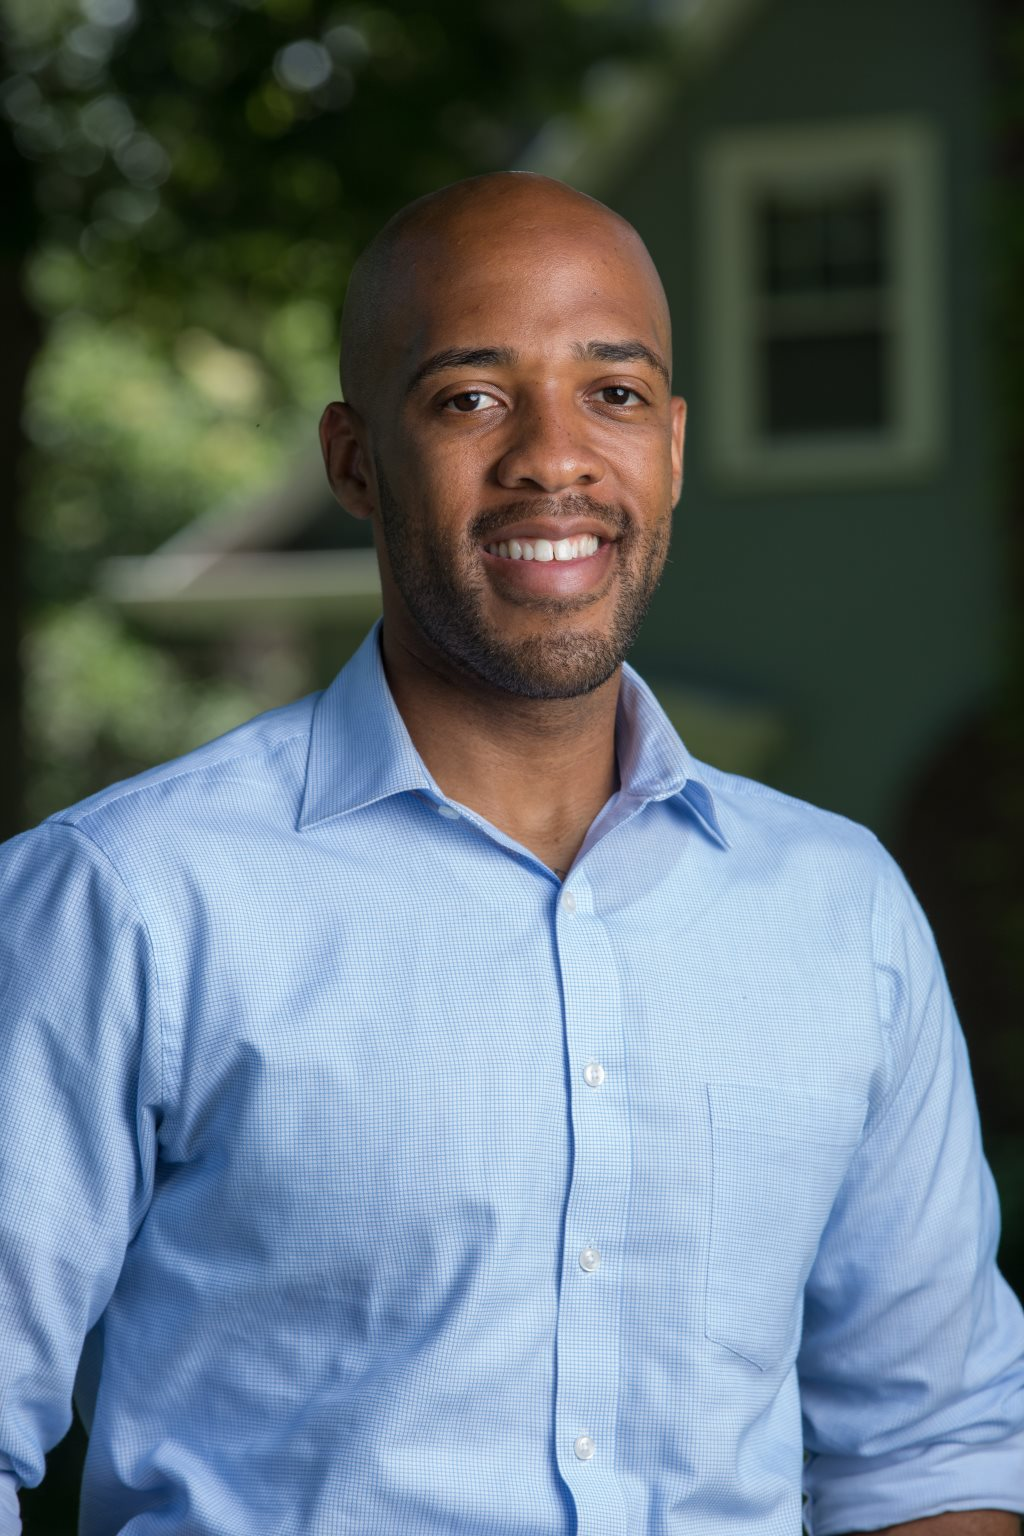 PFAW's Next Up Victory Fund Endorses Mandela Barnes for Lieutenant Governor